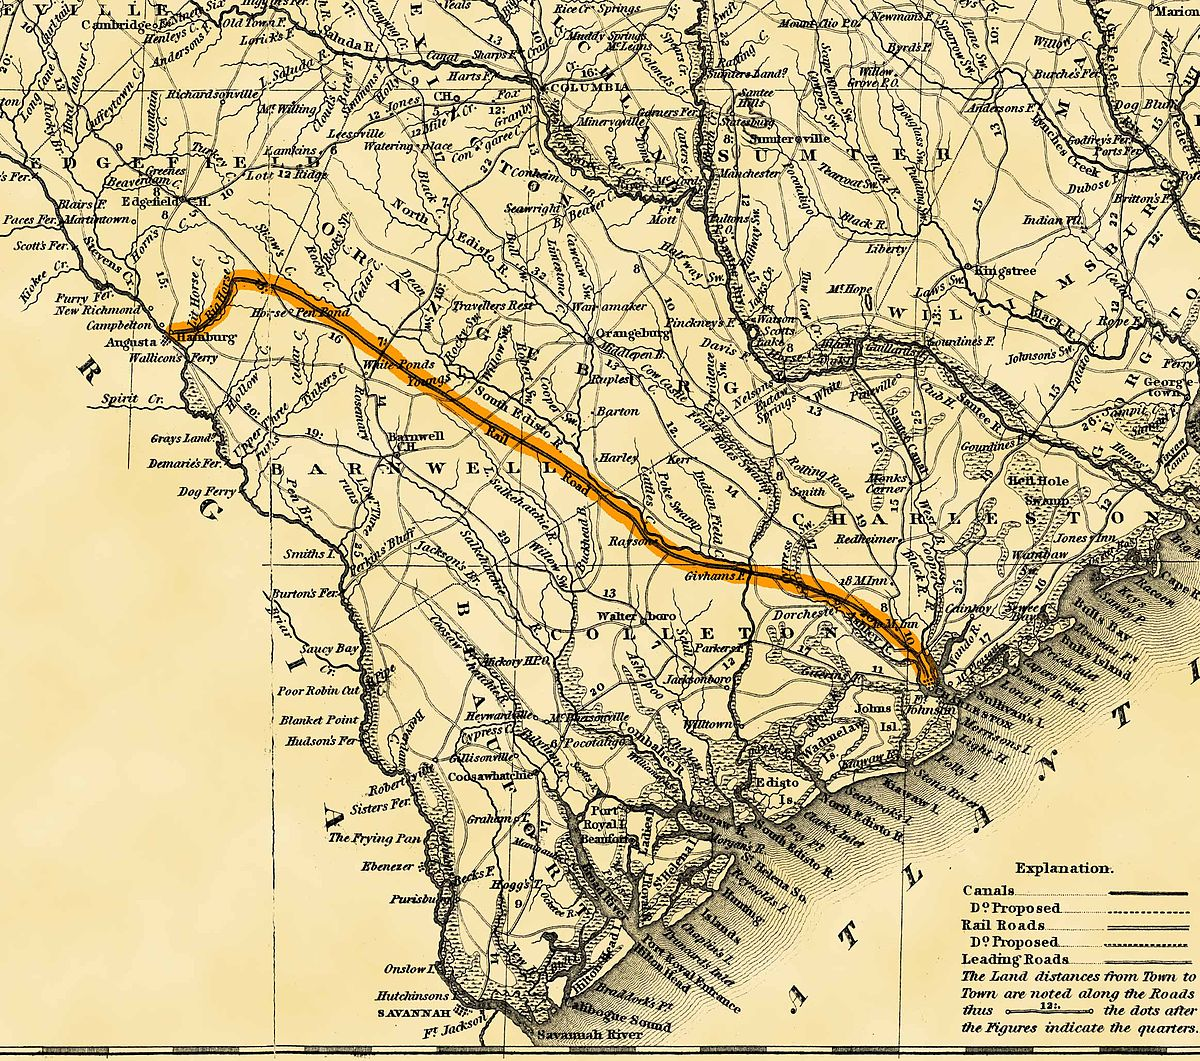 South Carolina Canal and Railroad Company Wikipedia